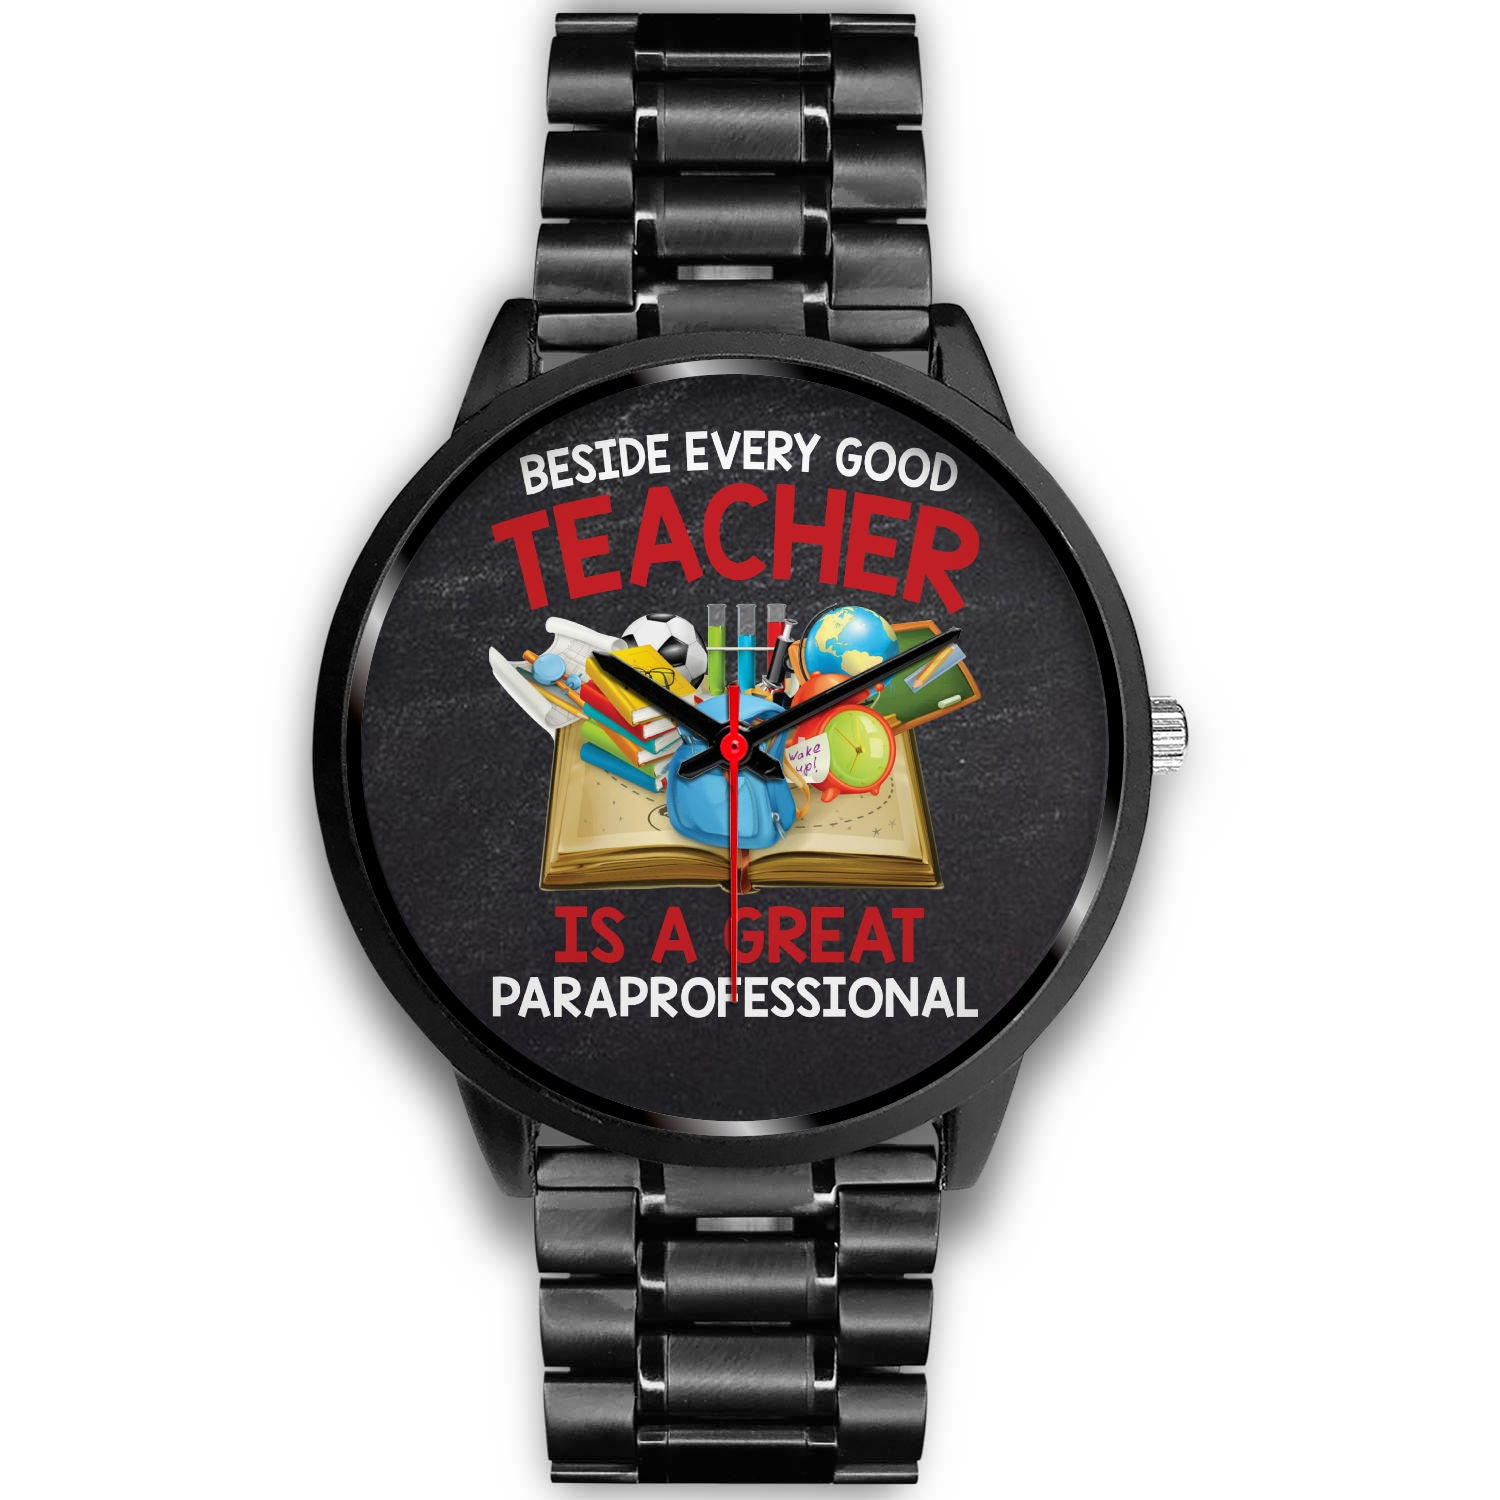 VIRA black stainless steel watch for awesome teachers & papaprofessionals